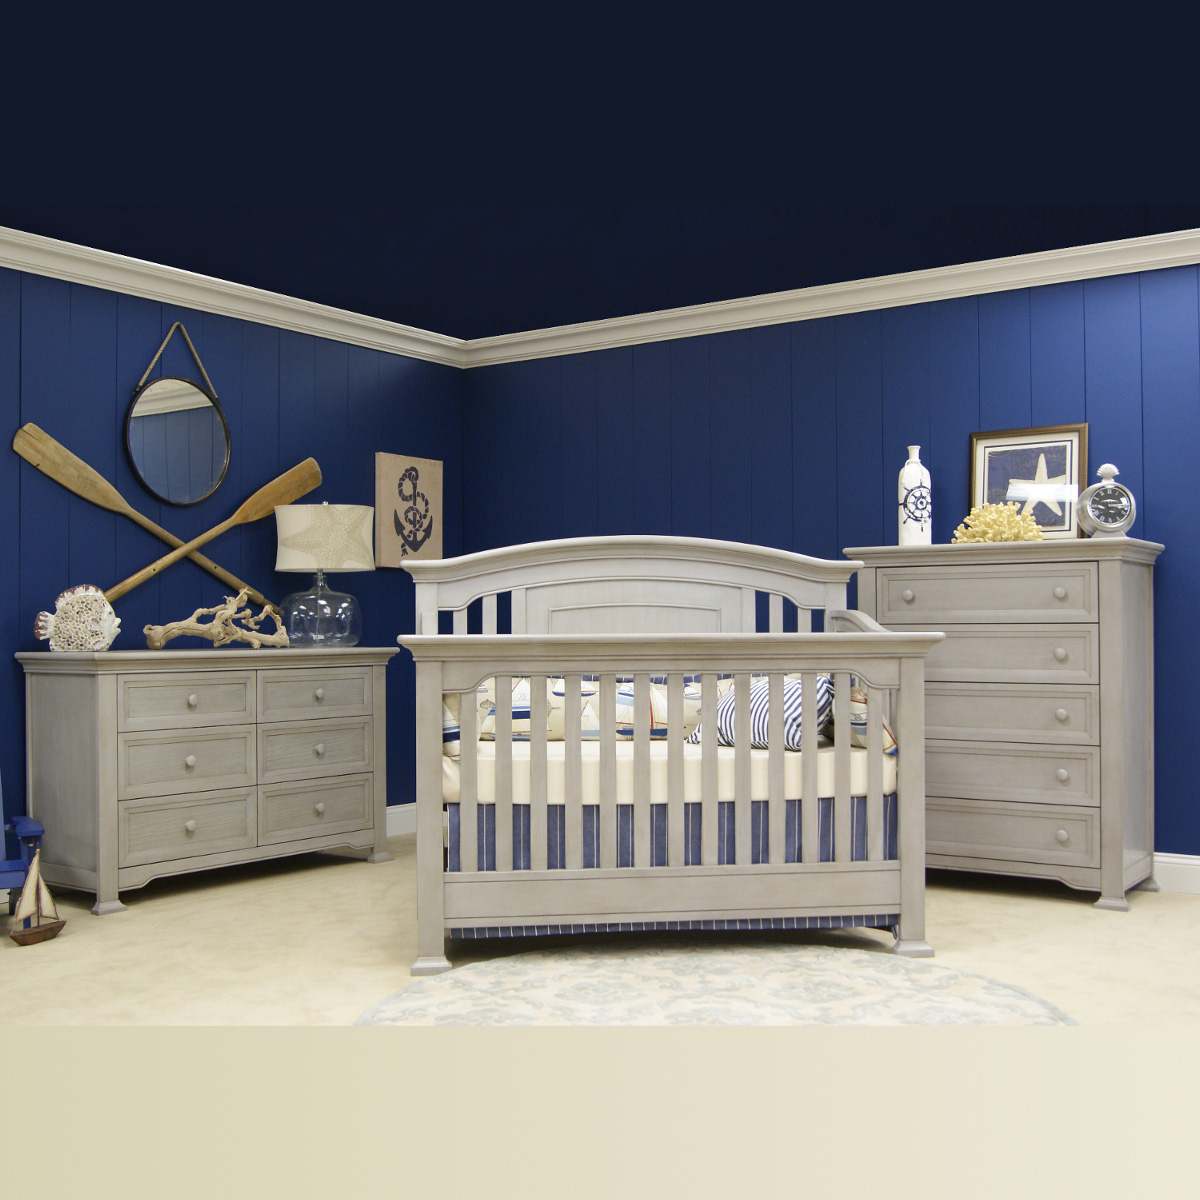 Baby cribs with matching dresser - Munire 3 Piece Nursery Set Medford Lifetime Crib 6 Drawer Double Dresser And 5